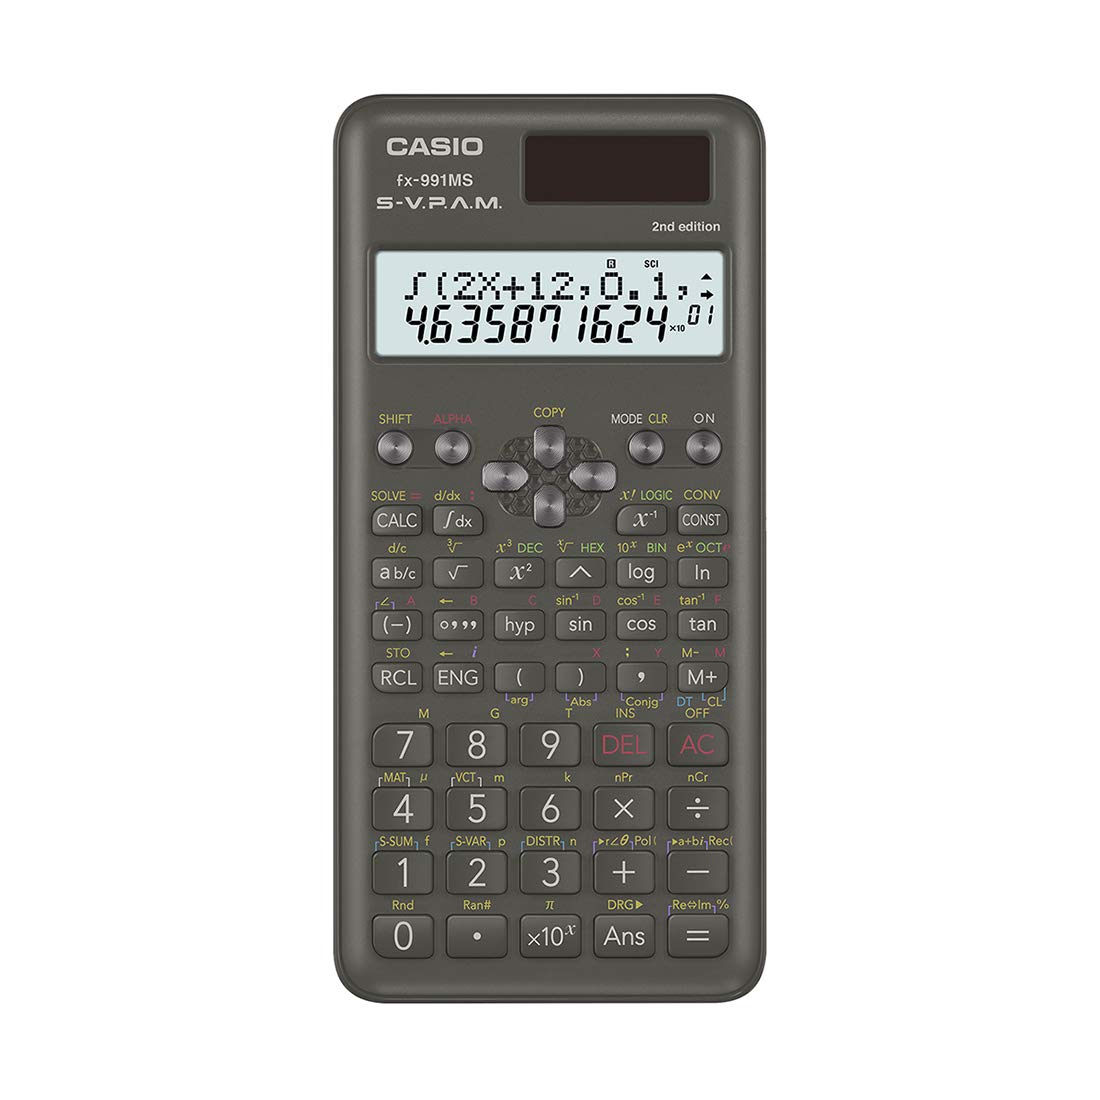 Casio FX-991MS 2nd Gen Non-Programmable Scientific Calculator, 401 Functions and 2-line Display product image